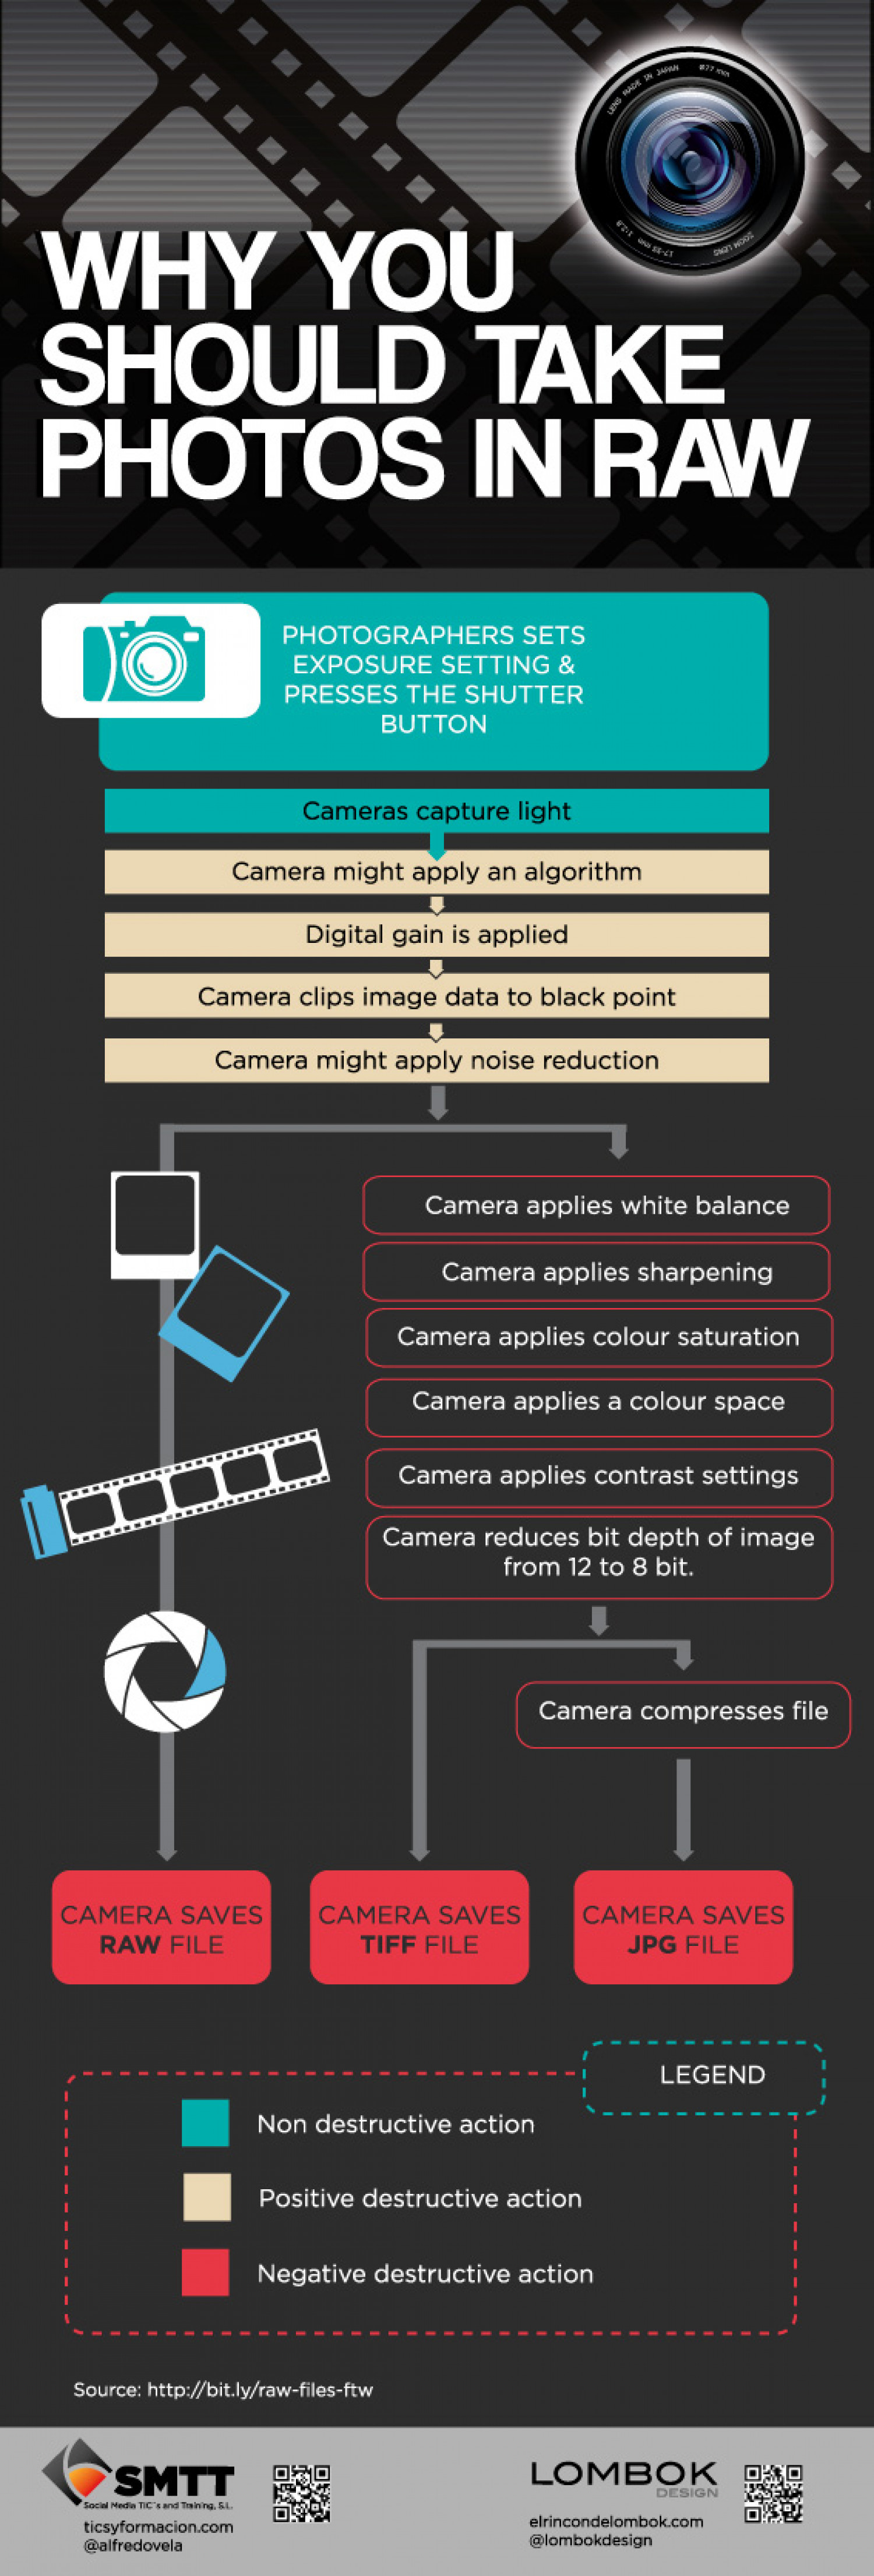 Why you should take photos in raw? Infographic